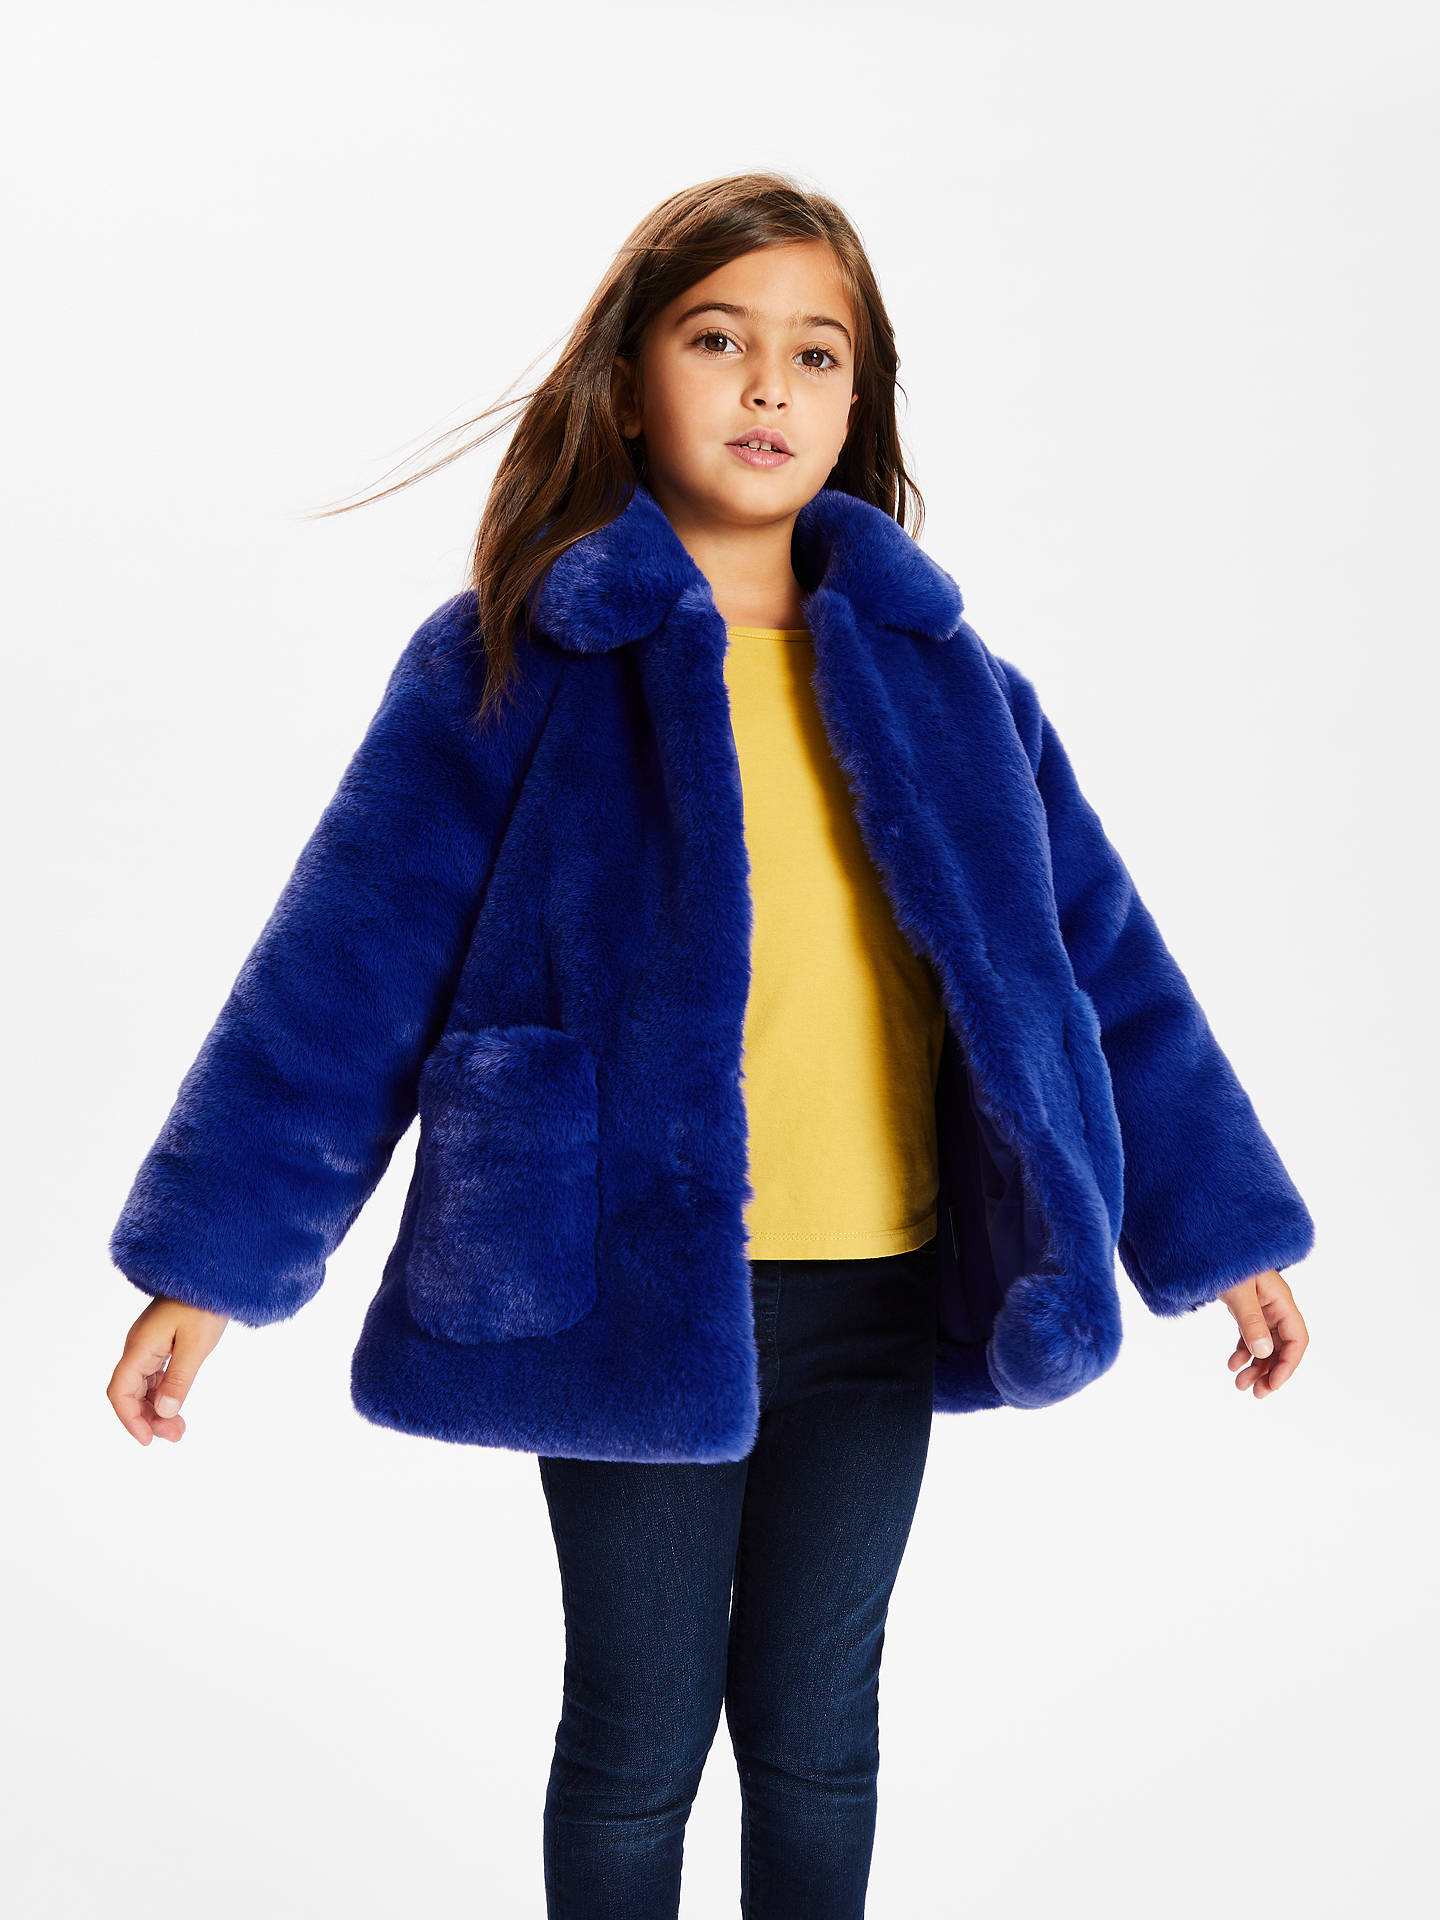 BuyJohn Lewis & Partners Girls' Faux Fur Coat, Blue, 2 years Online at johnlewis.com